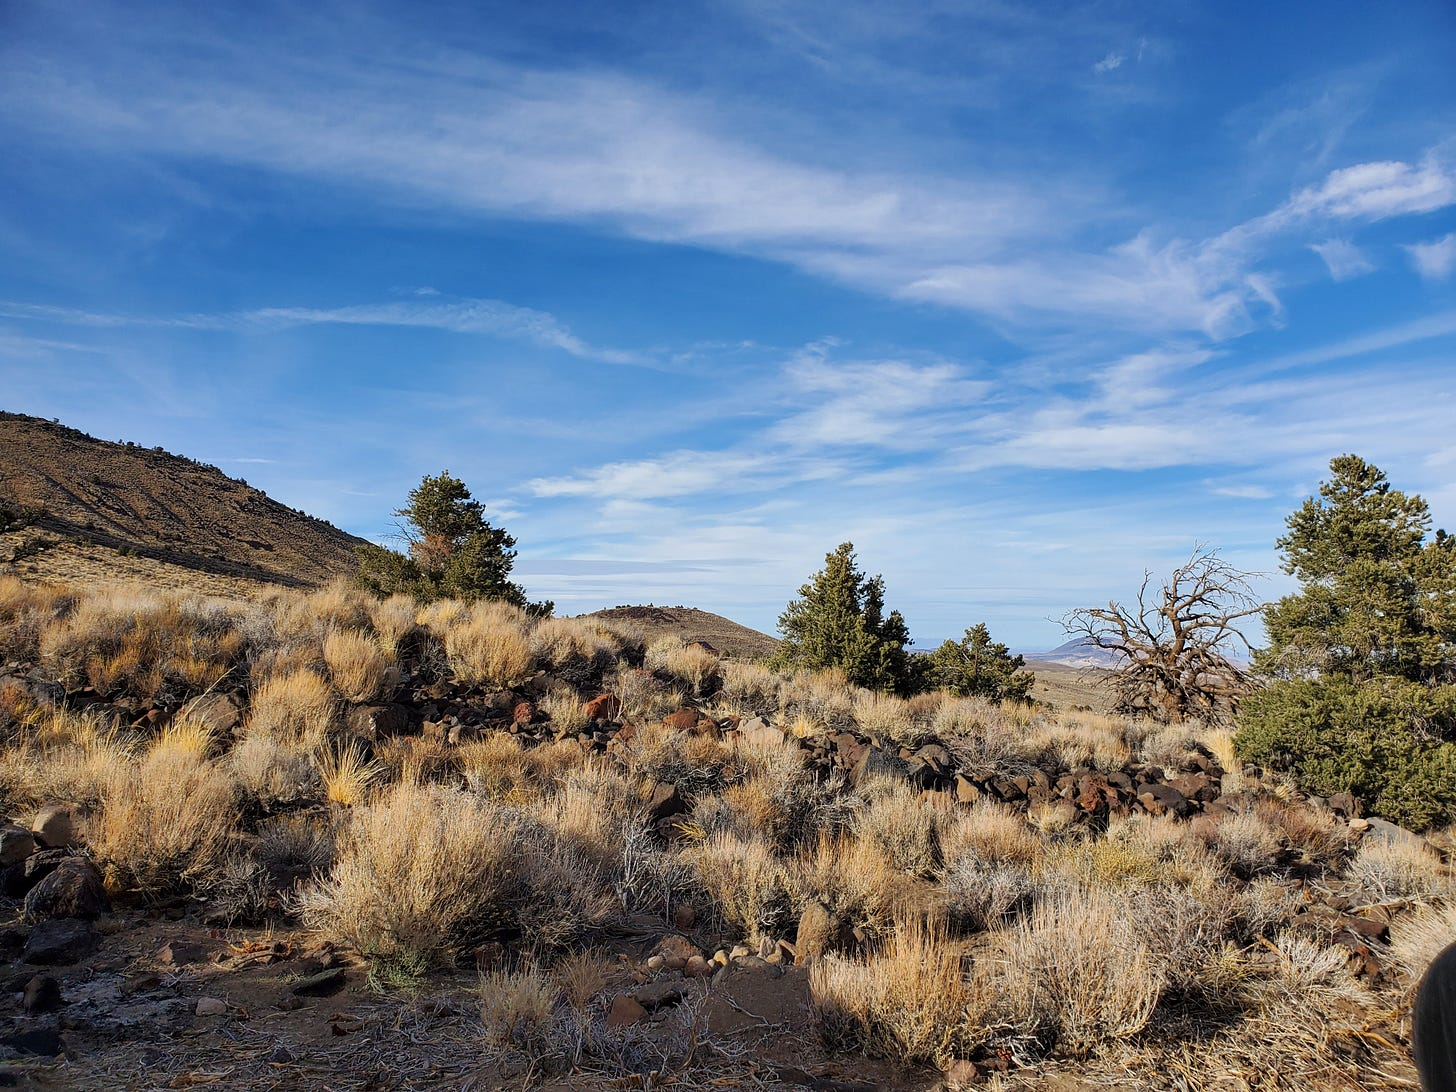 Landscape shot showing sage brush in the foreground and blue skies and white clouds in the distance.